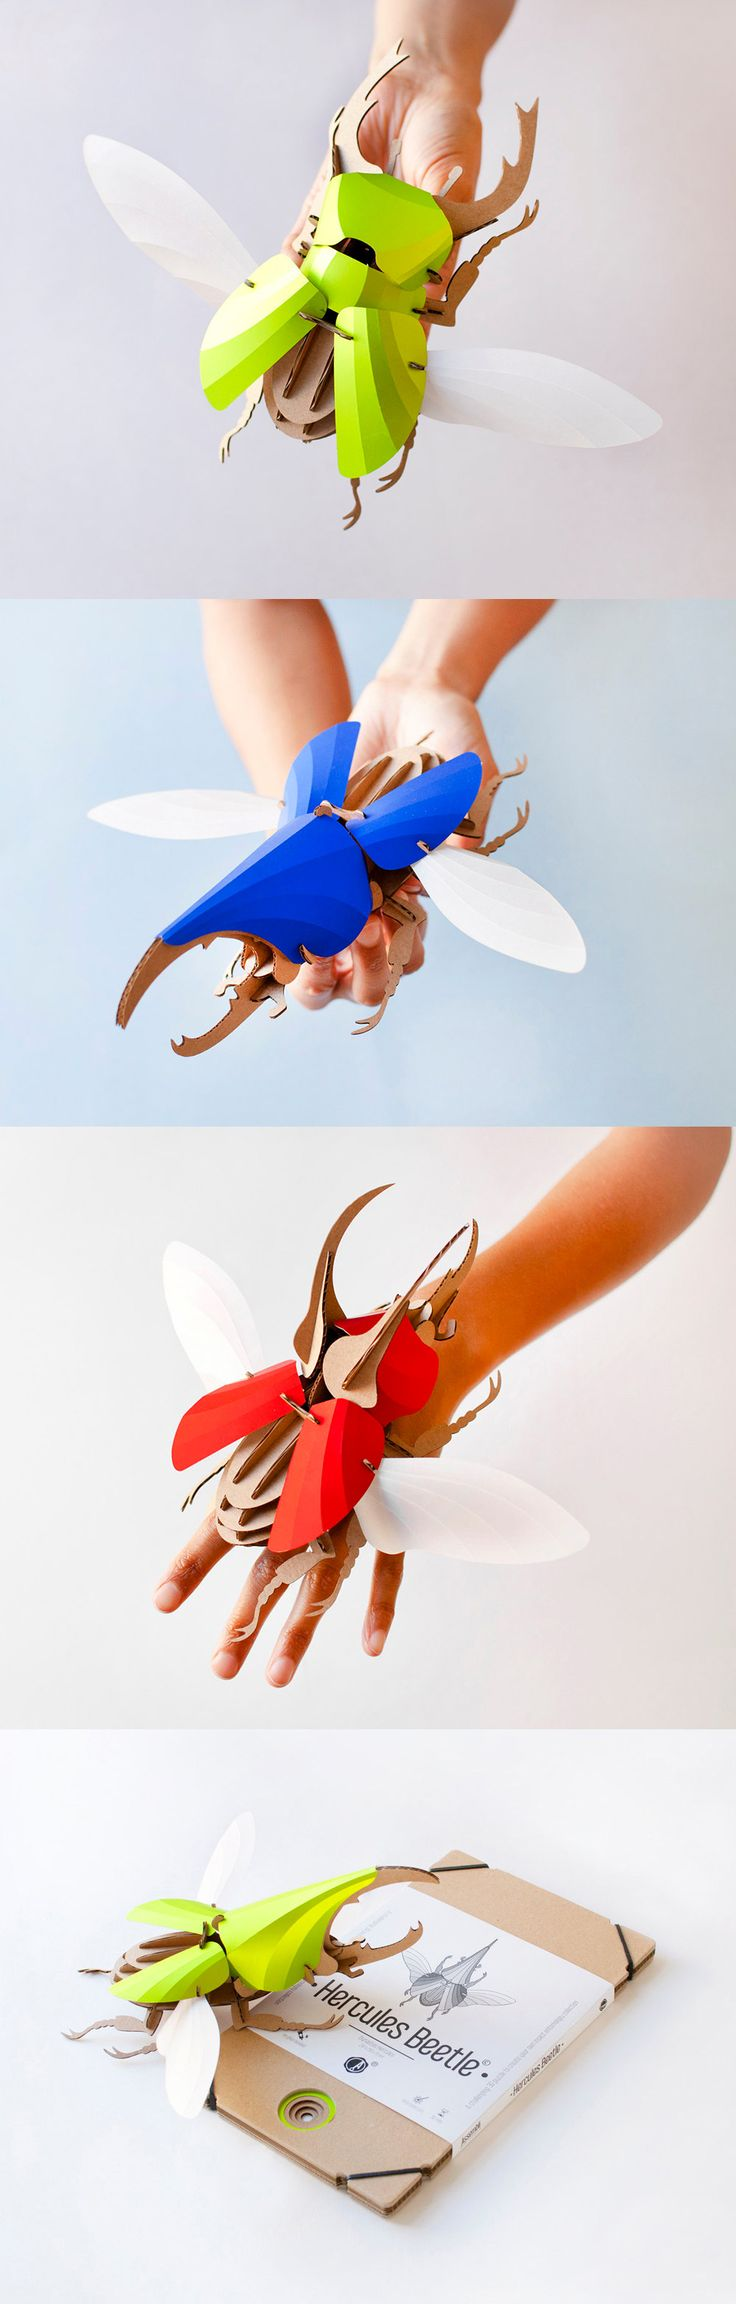 DIY Paper Beetle Sculpture Kits by Assembli